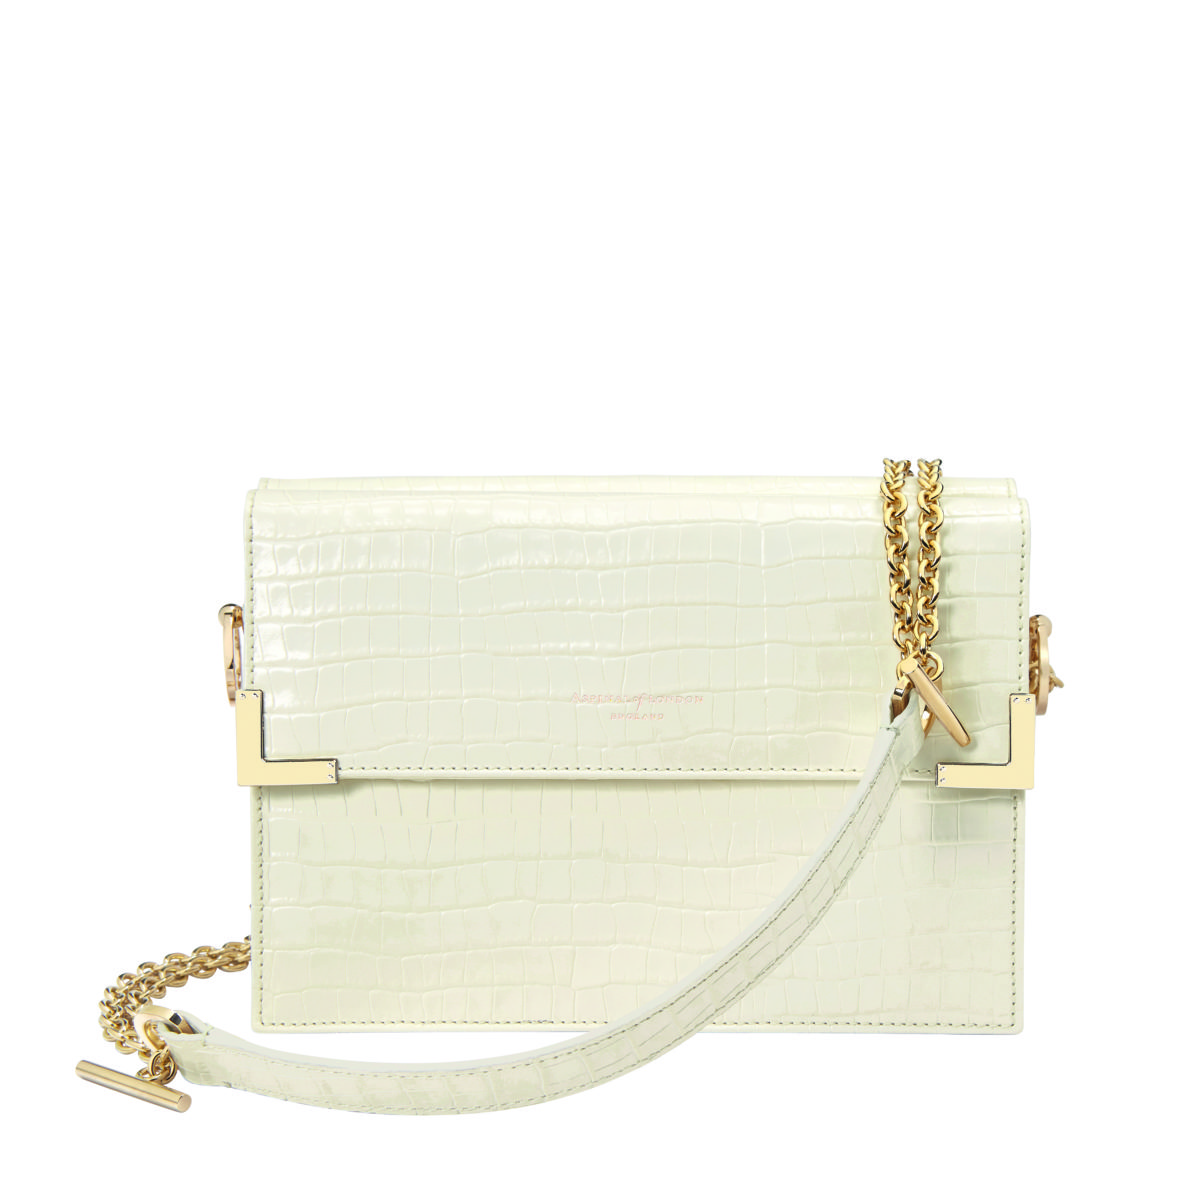 Chelsea Bag Ivory - Aspinal SS18